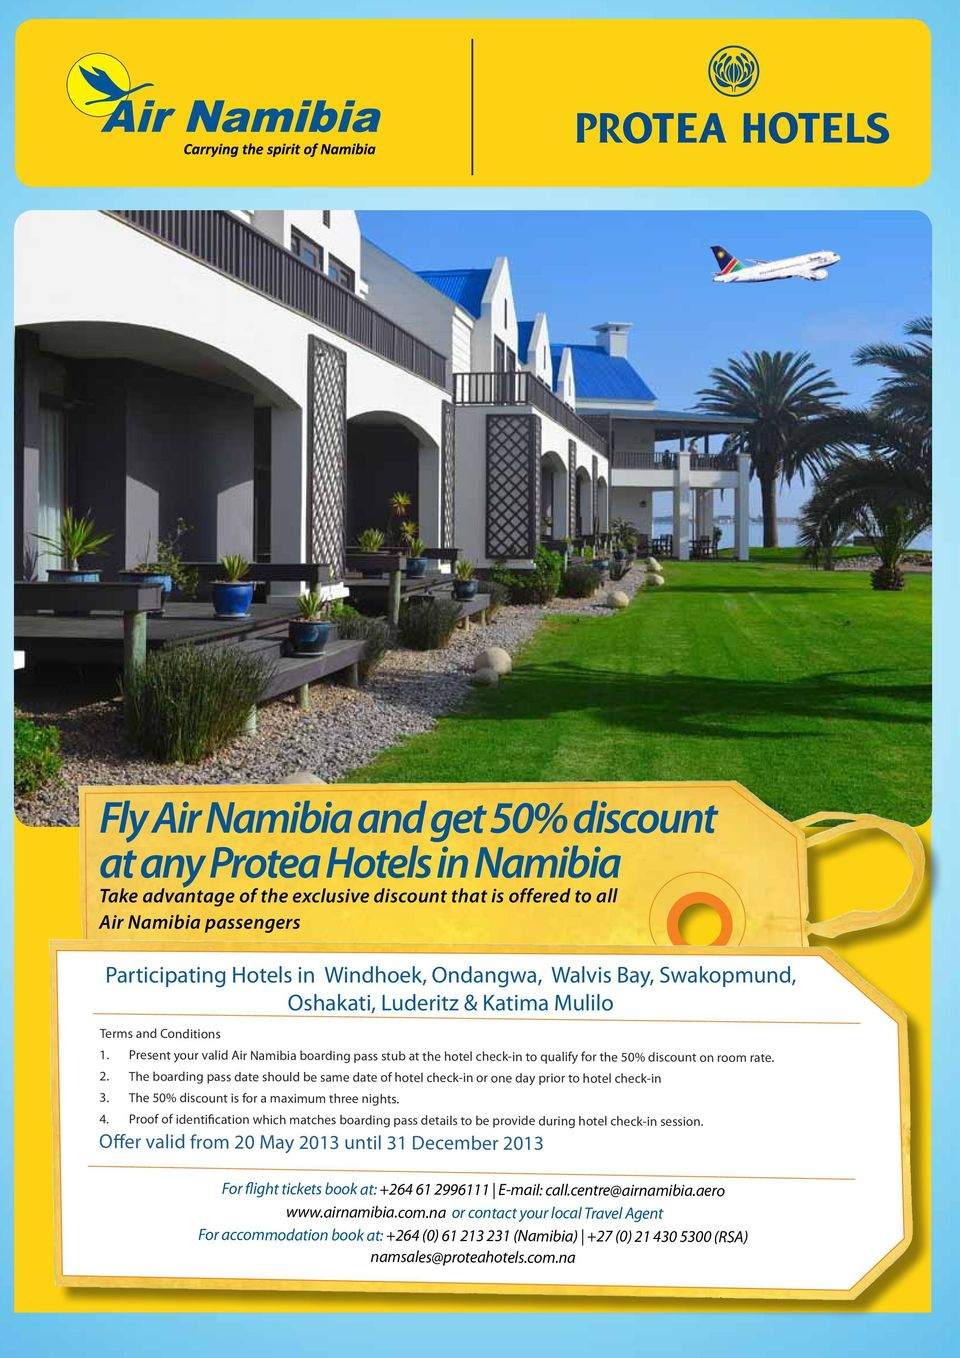 2. The boarding pass date should be same date of hotel check-in or one day prior to hotel check-in 3. The 50% discount is for a maximum three nights. 4.